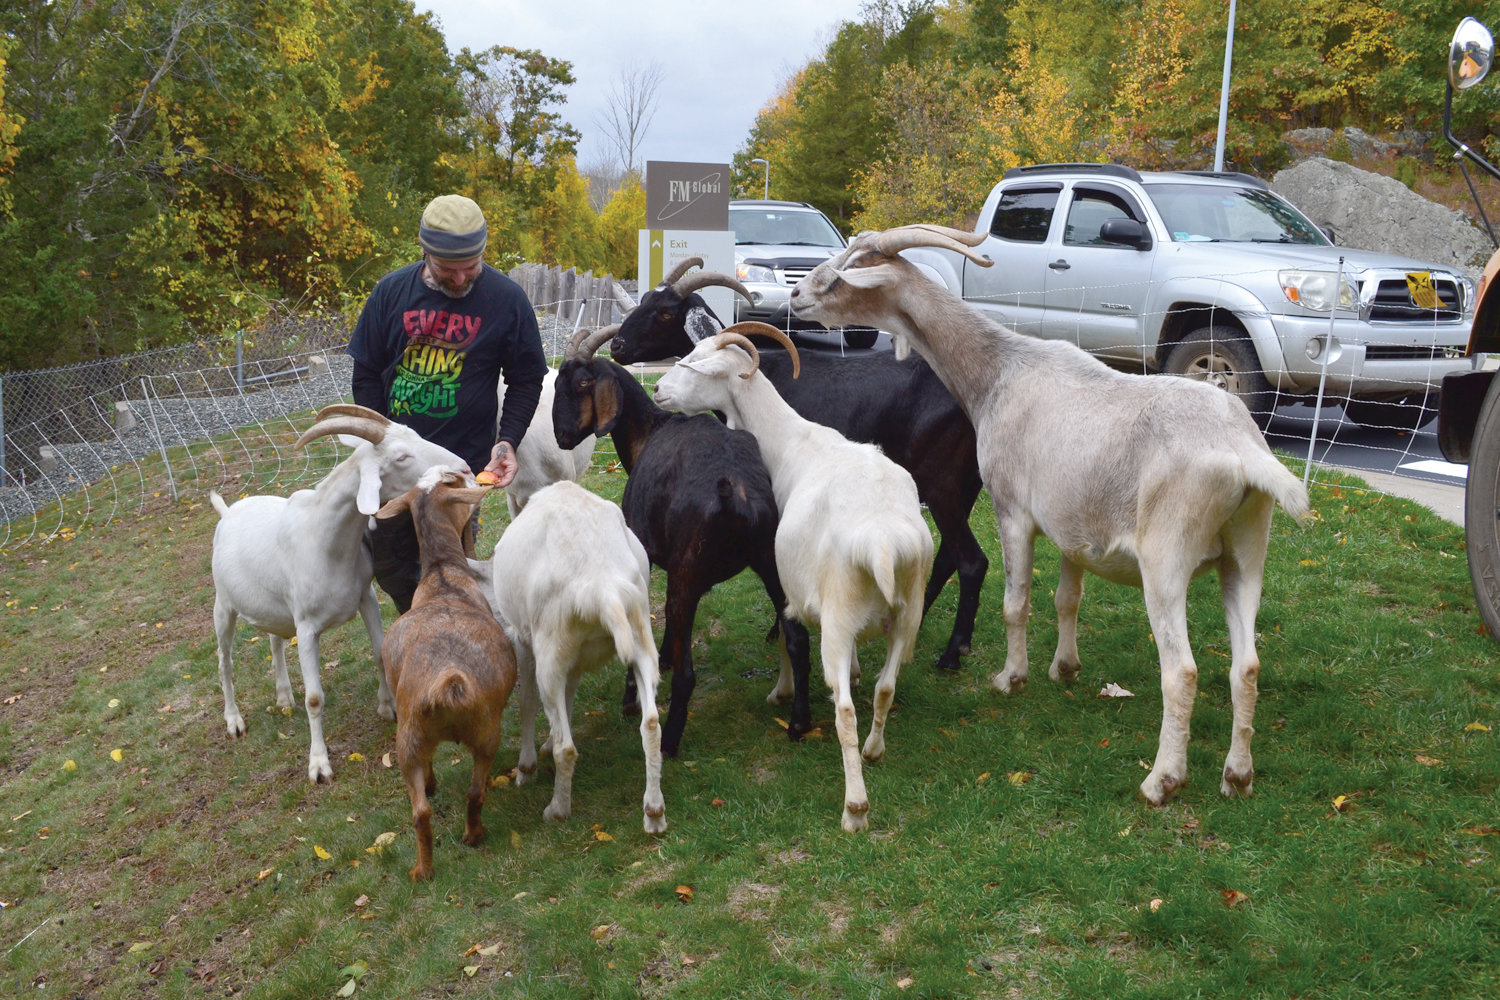 HAVE YOU HERD? Laurel Hill Microfarm goat herder Wayne Pitman feeds some of his loyal companions before they go to work at FM Global last Thursday.